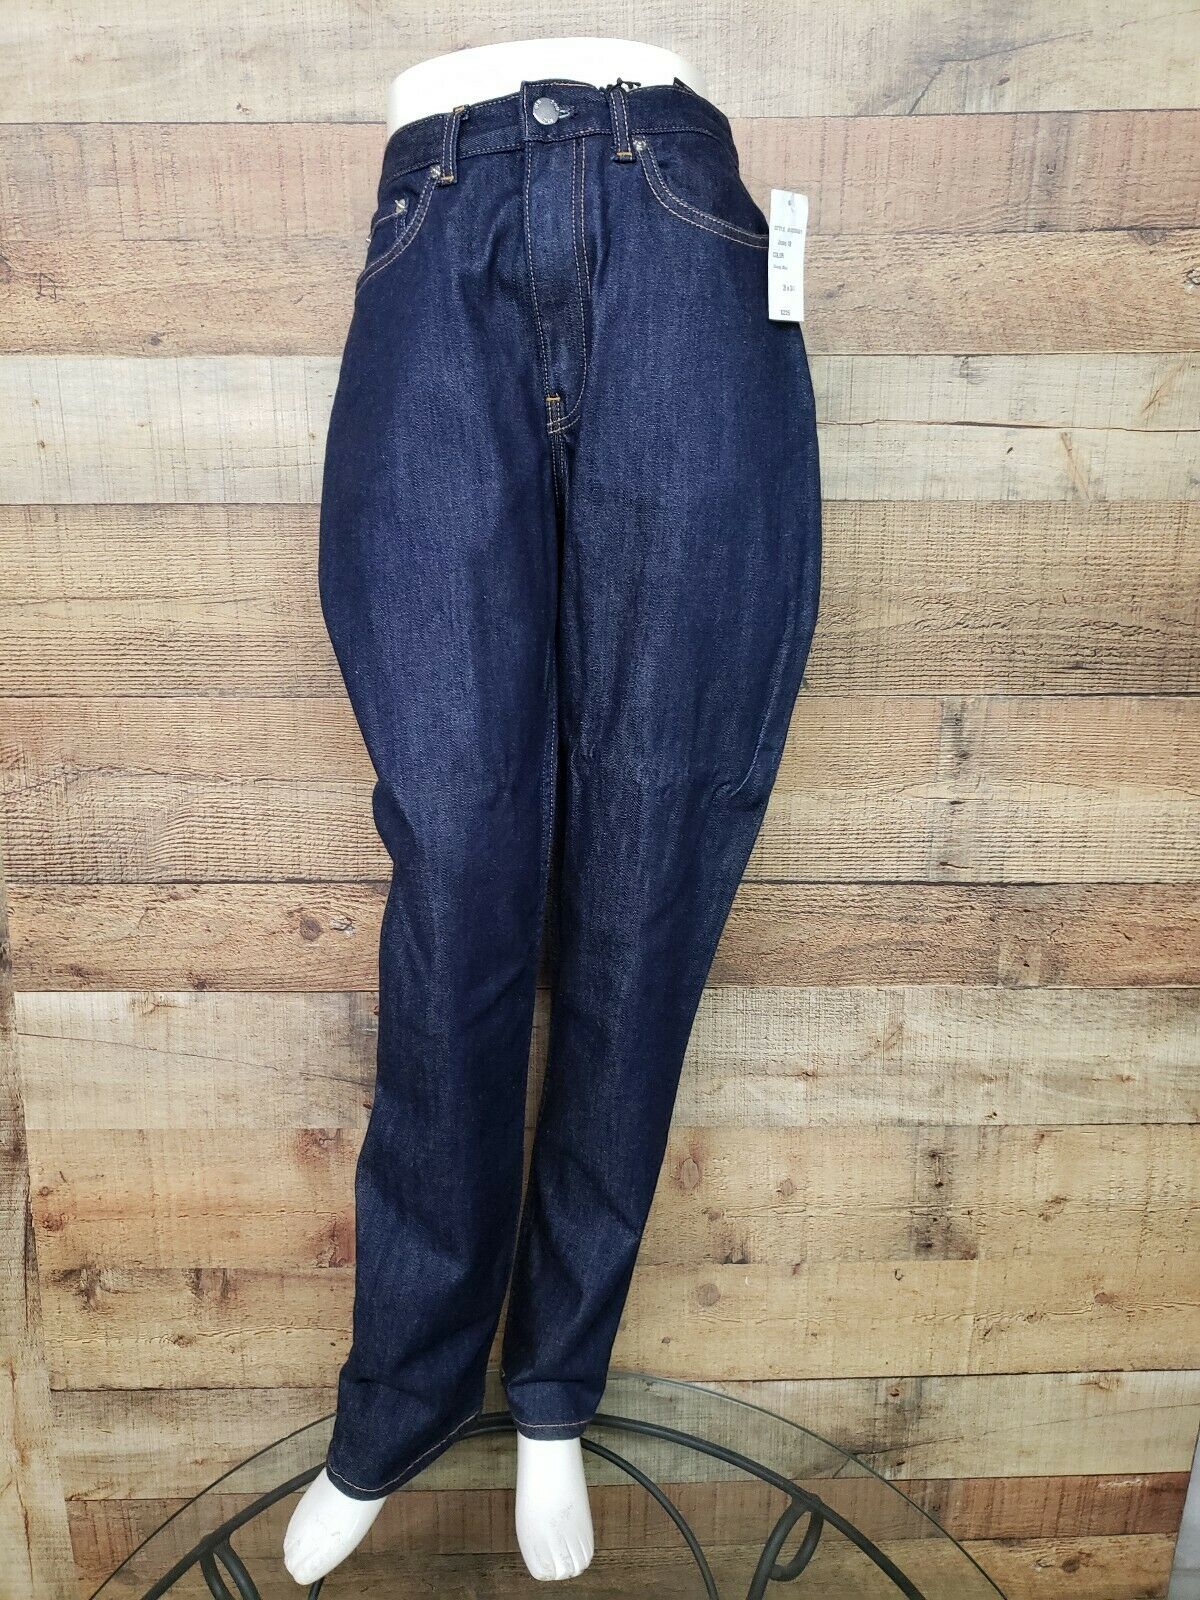 BLK DNM NYC Denim Jeans Women's Pants Size 26x34 New With Tags